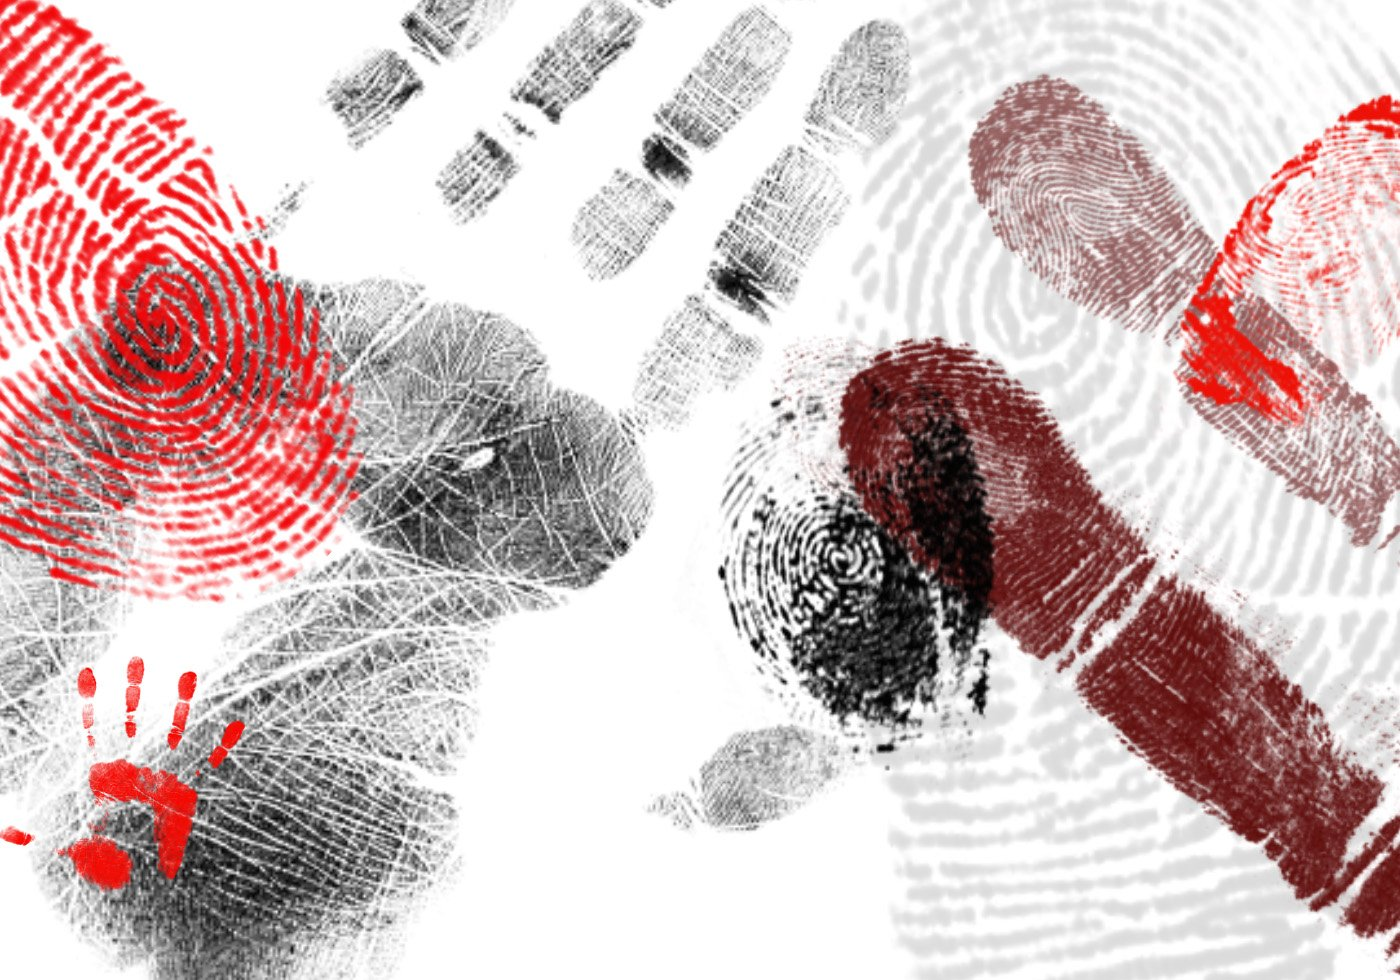 Fingerprints Free Photoshop Brushes At Brusheezy